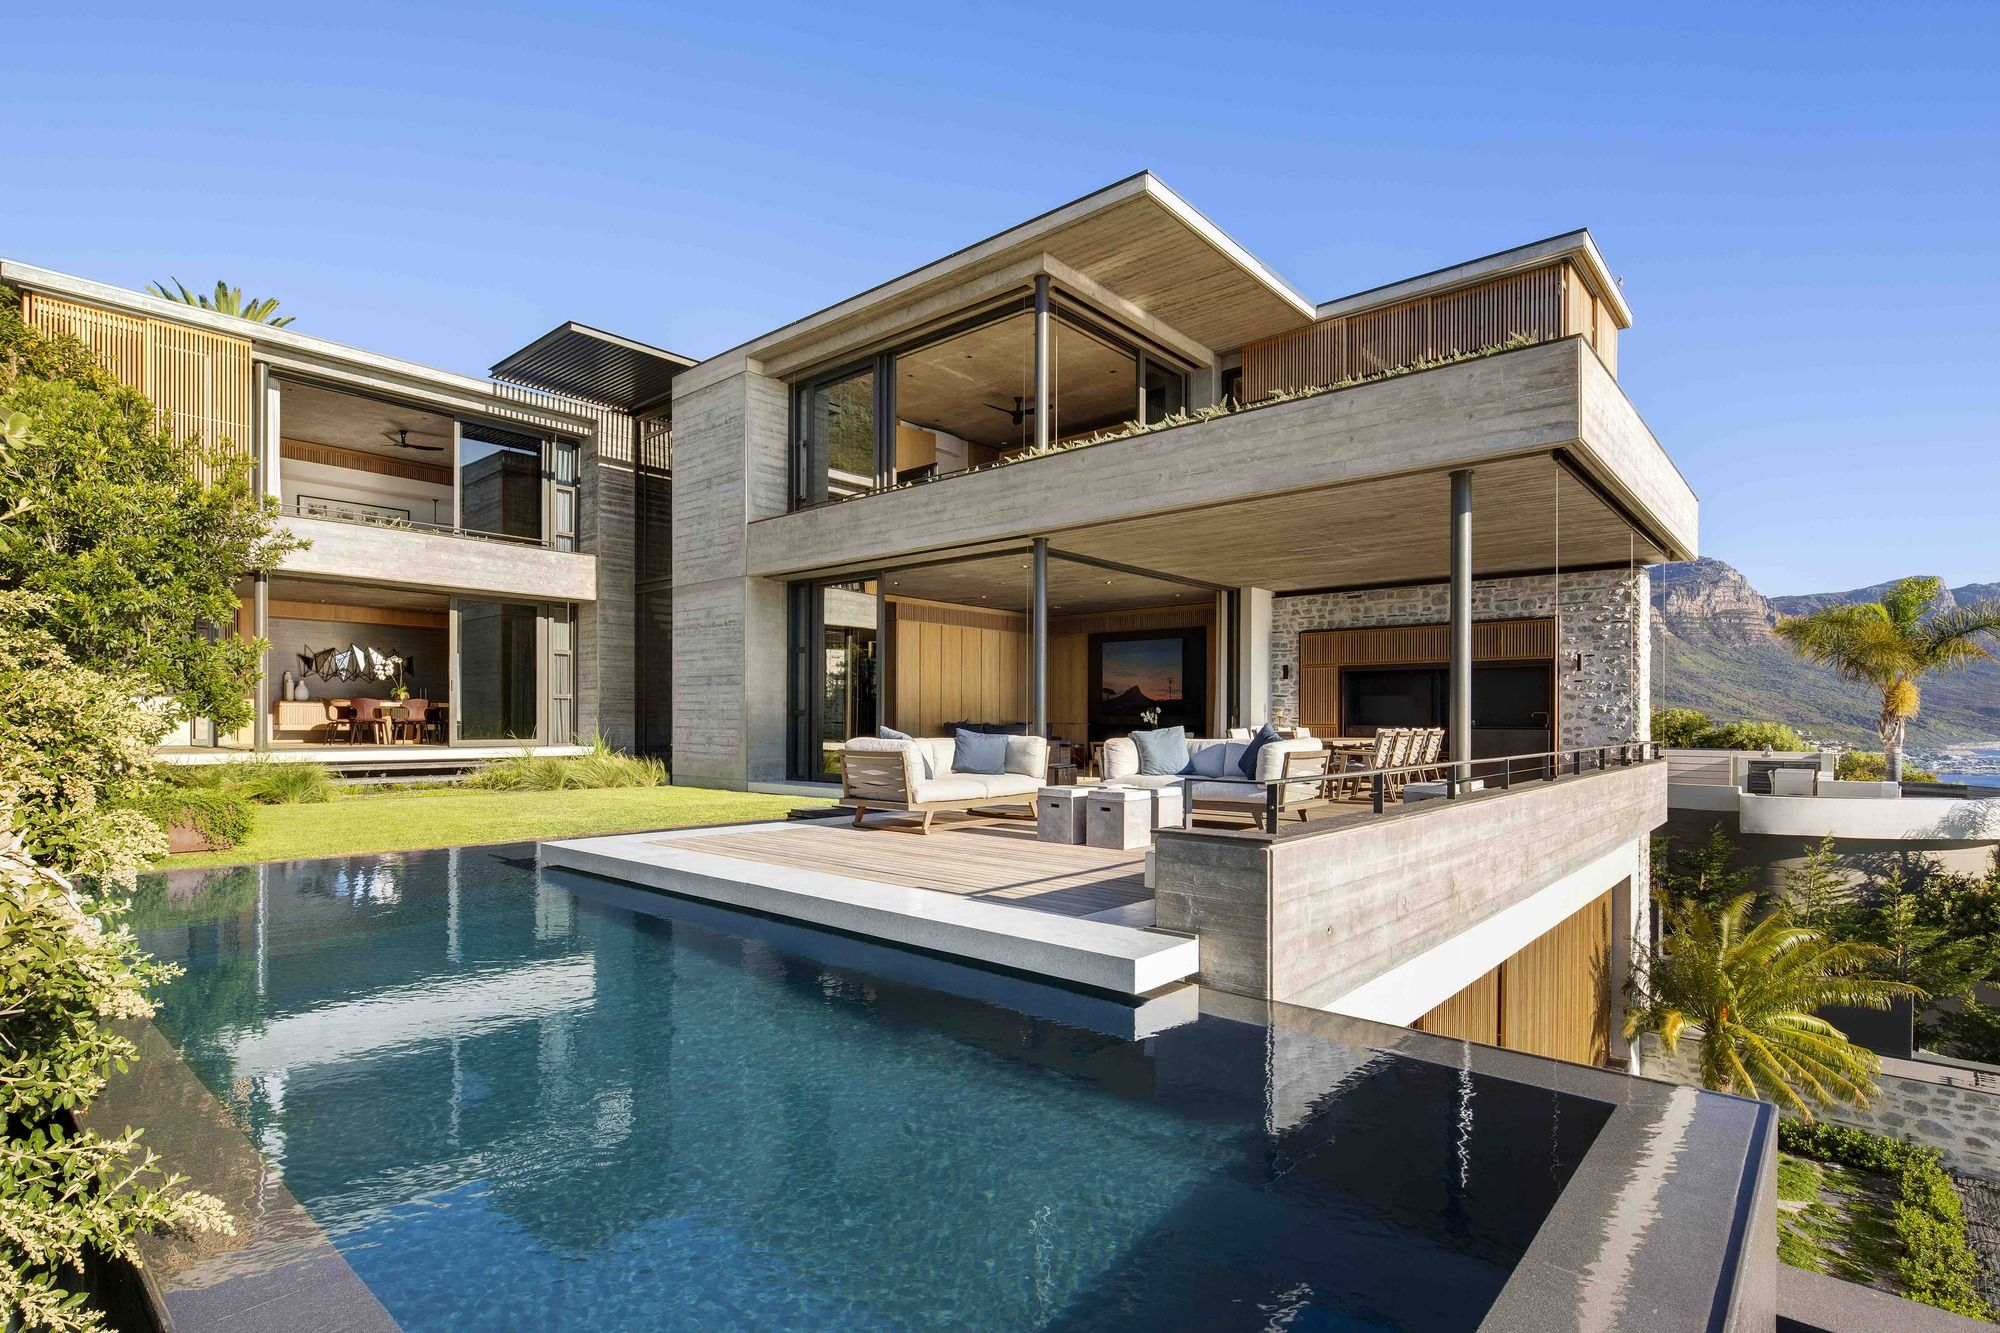 Double Story House Designs In South Africa 1 Home Design In 2020 House Plans South Africa Best Modern House Design Contemporary House Plans